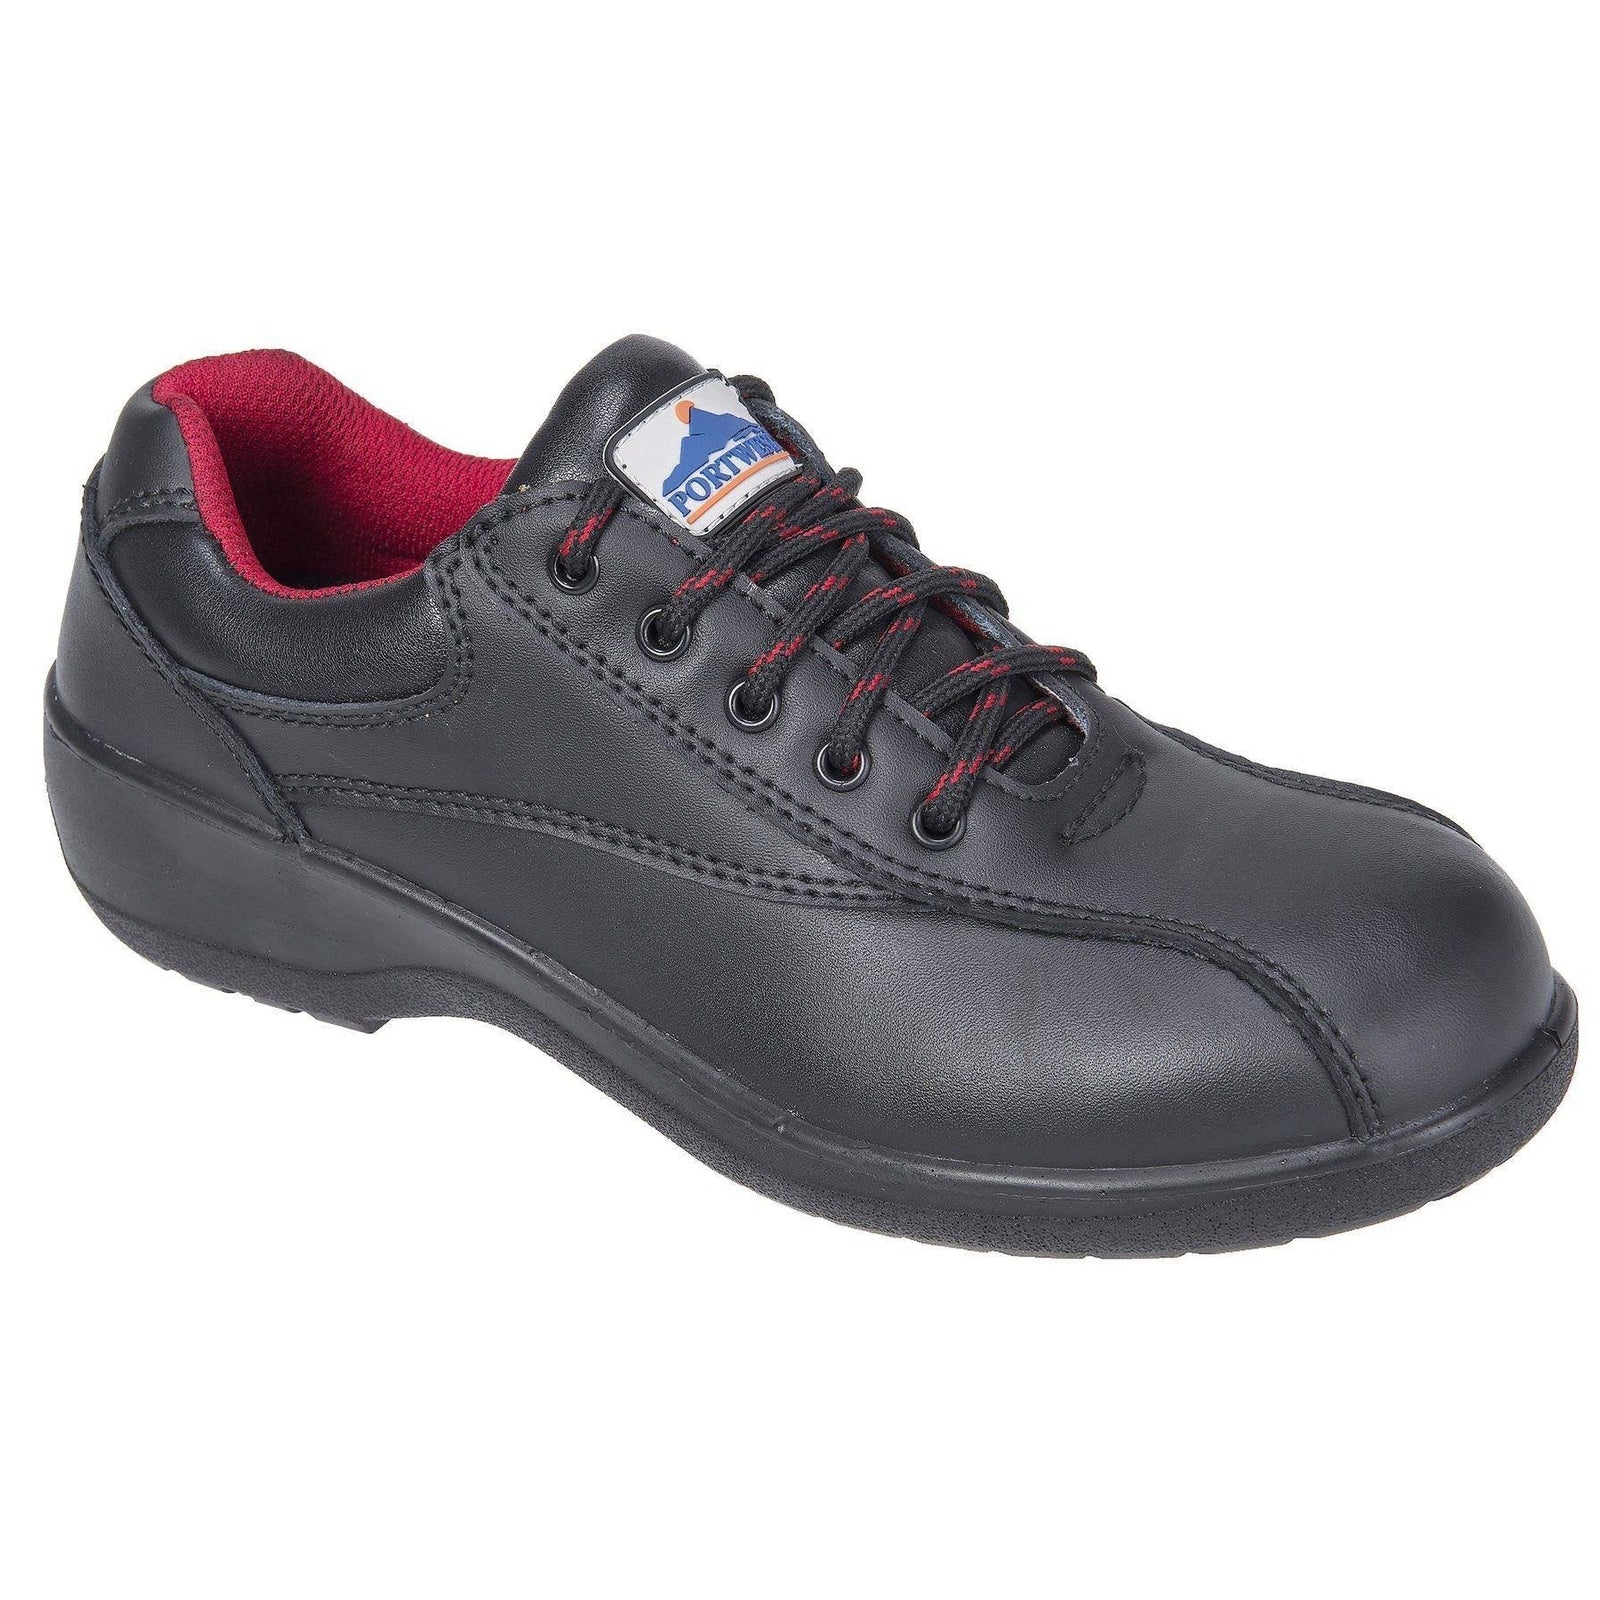 Portwest Steelite Ladies Safety Shoe S1 FW41 - reid outdoors